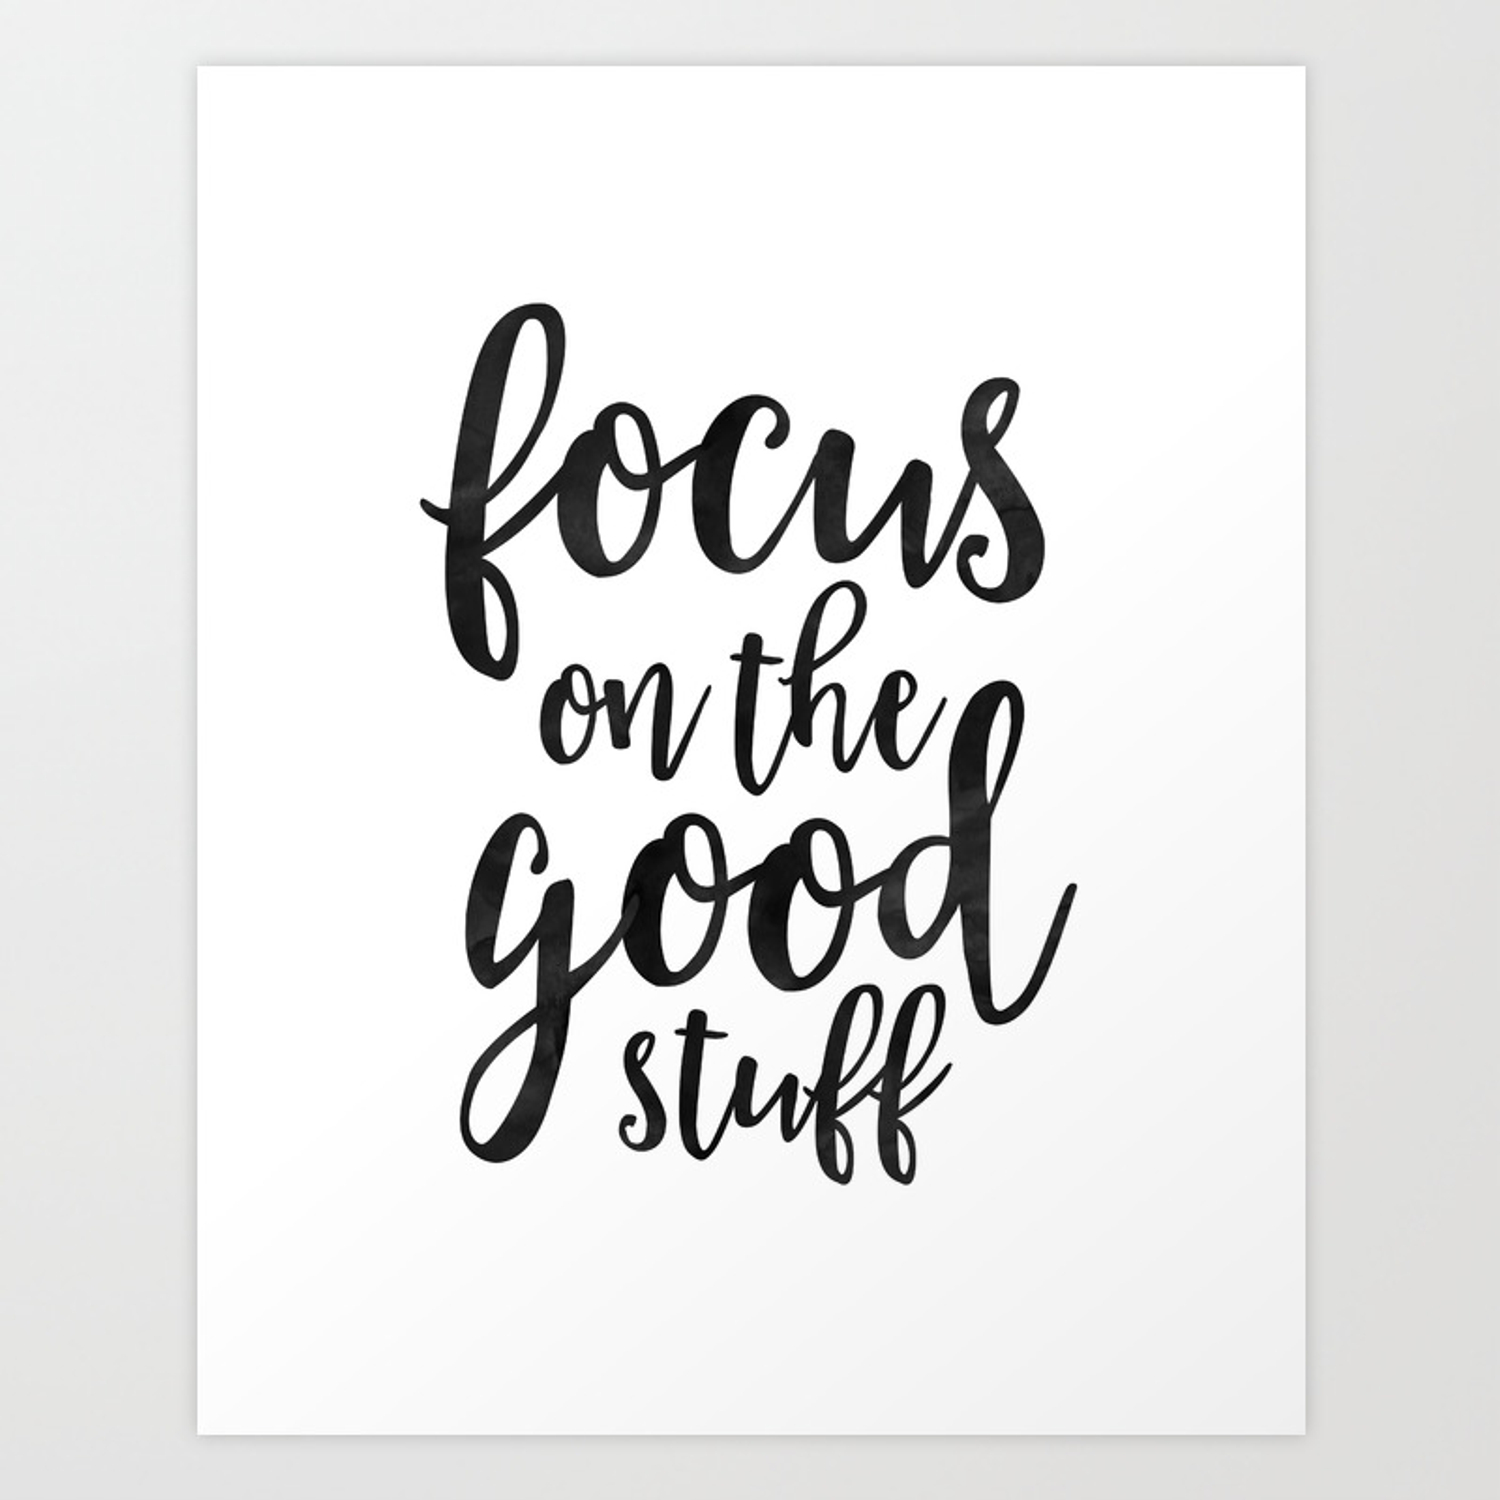 Printable art focus on the good stuffmotivational quoteblack and whiteoffice decorworkout quote art print